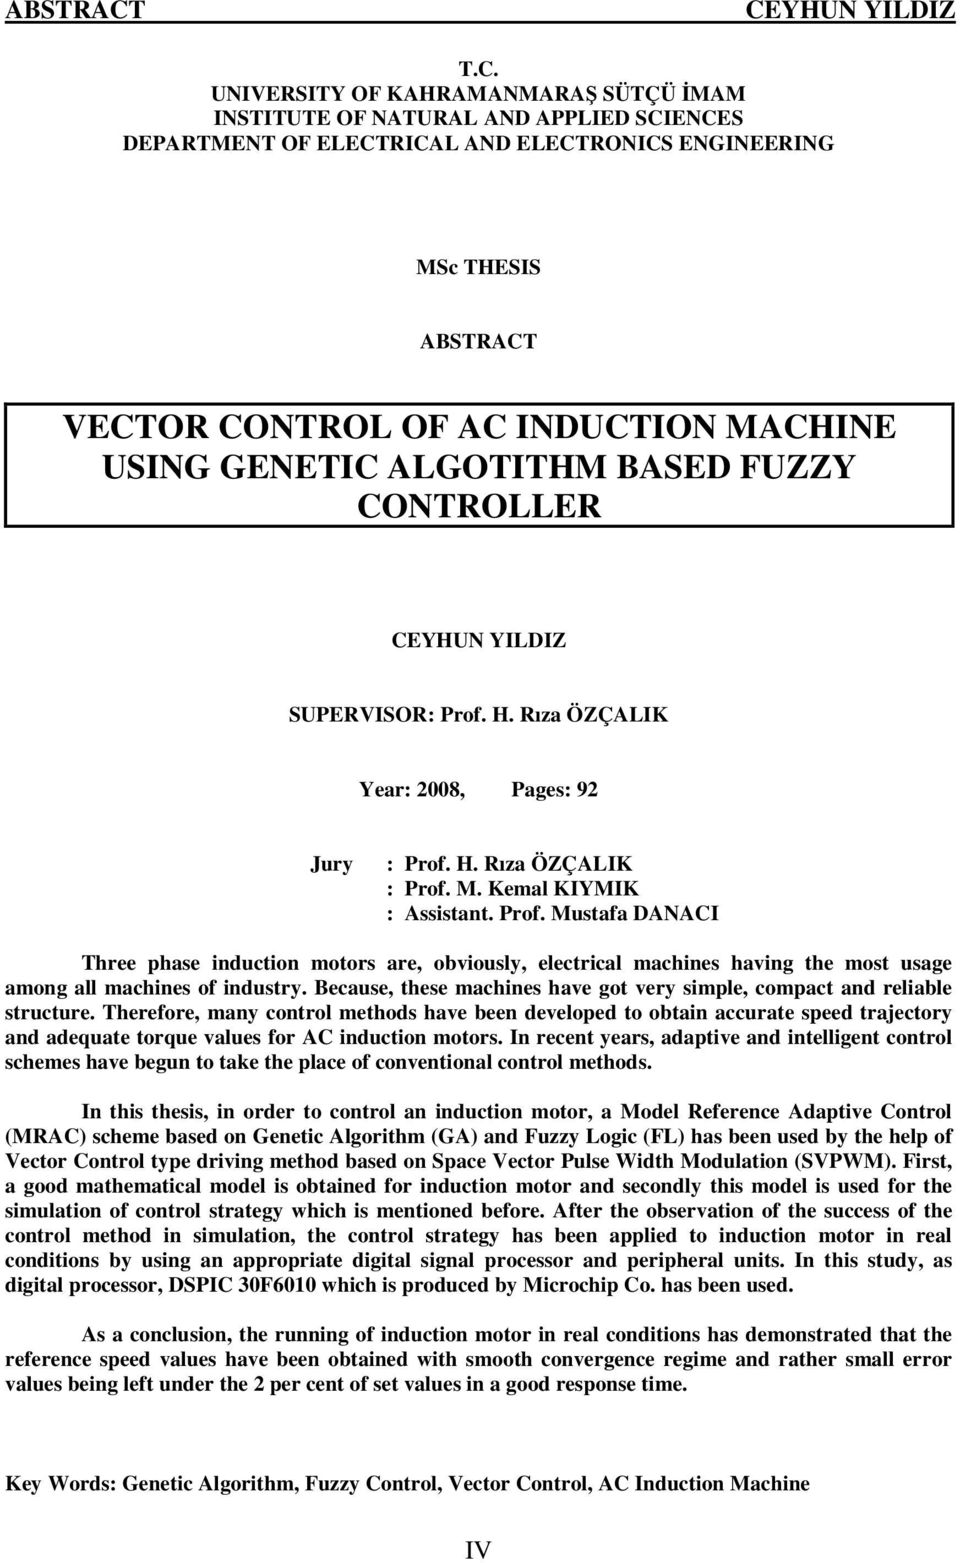 GENETIC ALGOTITHM BASED FUZZY CONTROLLER SUPERVISOR: Prof. H. Rıza ÖZÇALIK Year: 28, Pages: 92 Jury : Prof. H. Rıza ÖZÇALIK : Prof. M. Kemal KIYMIK : Assistant. Prof. Mustafa DANACI Three phase induction motors are, obviously, electrical machines having the most usage among all machines of industry.